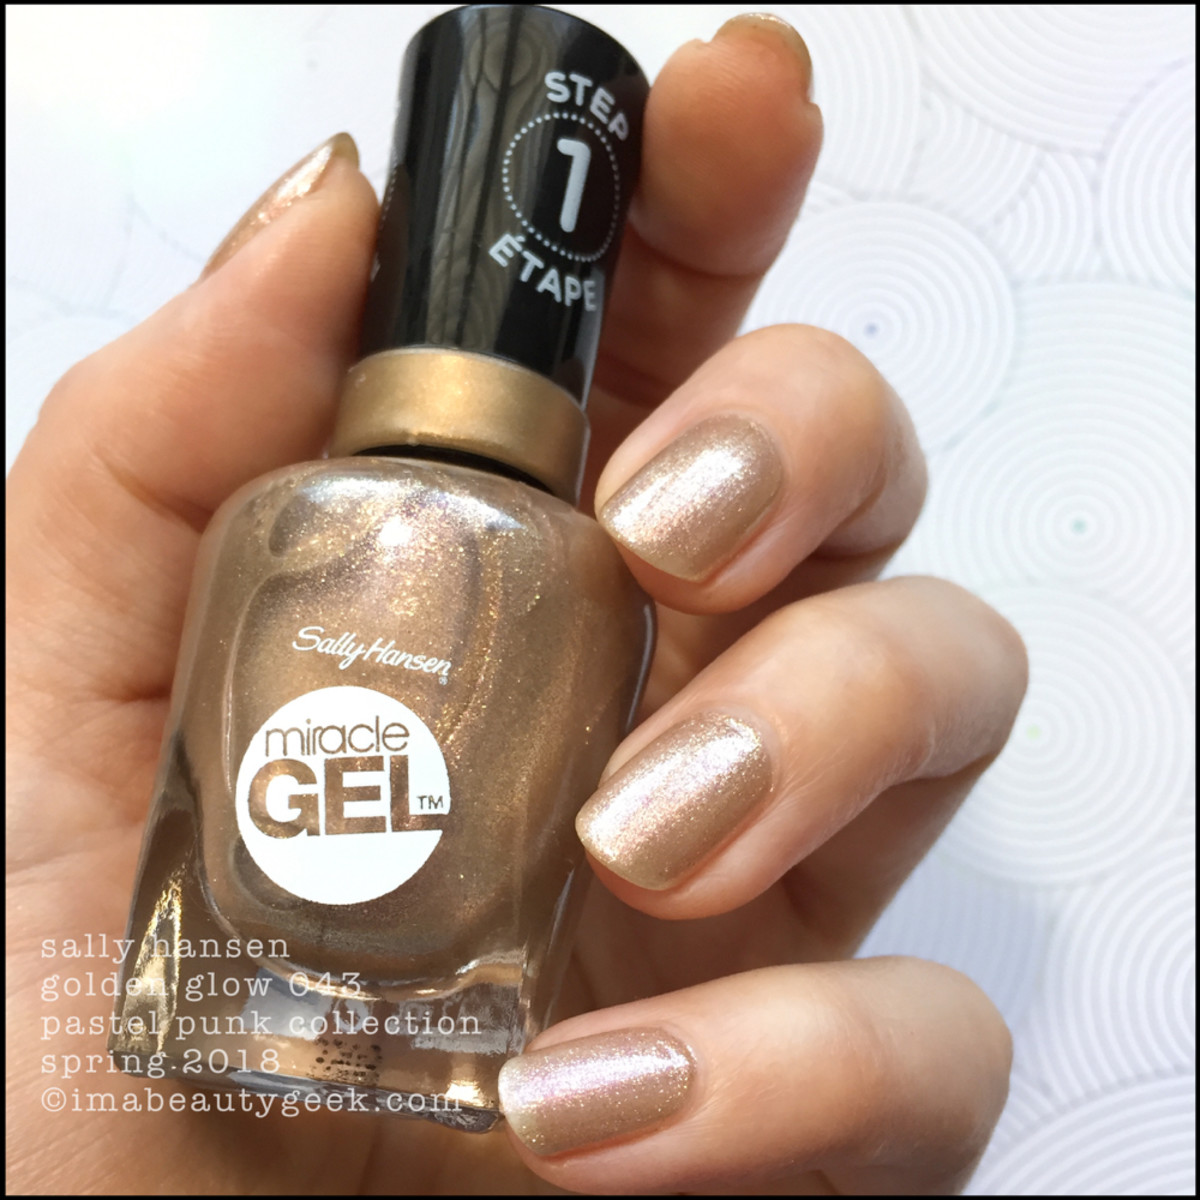 Sally Hansen Golden Glow 043 Miracle Gel 2018